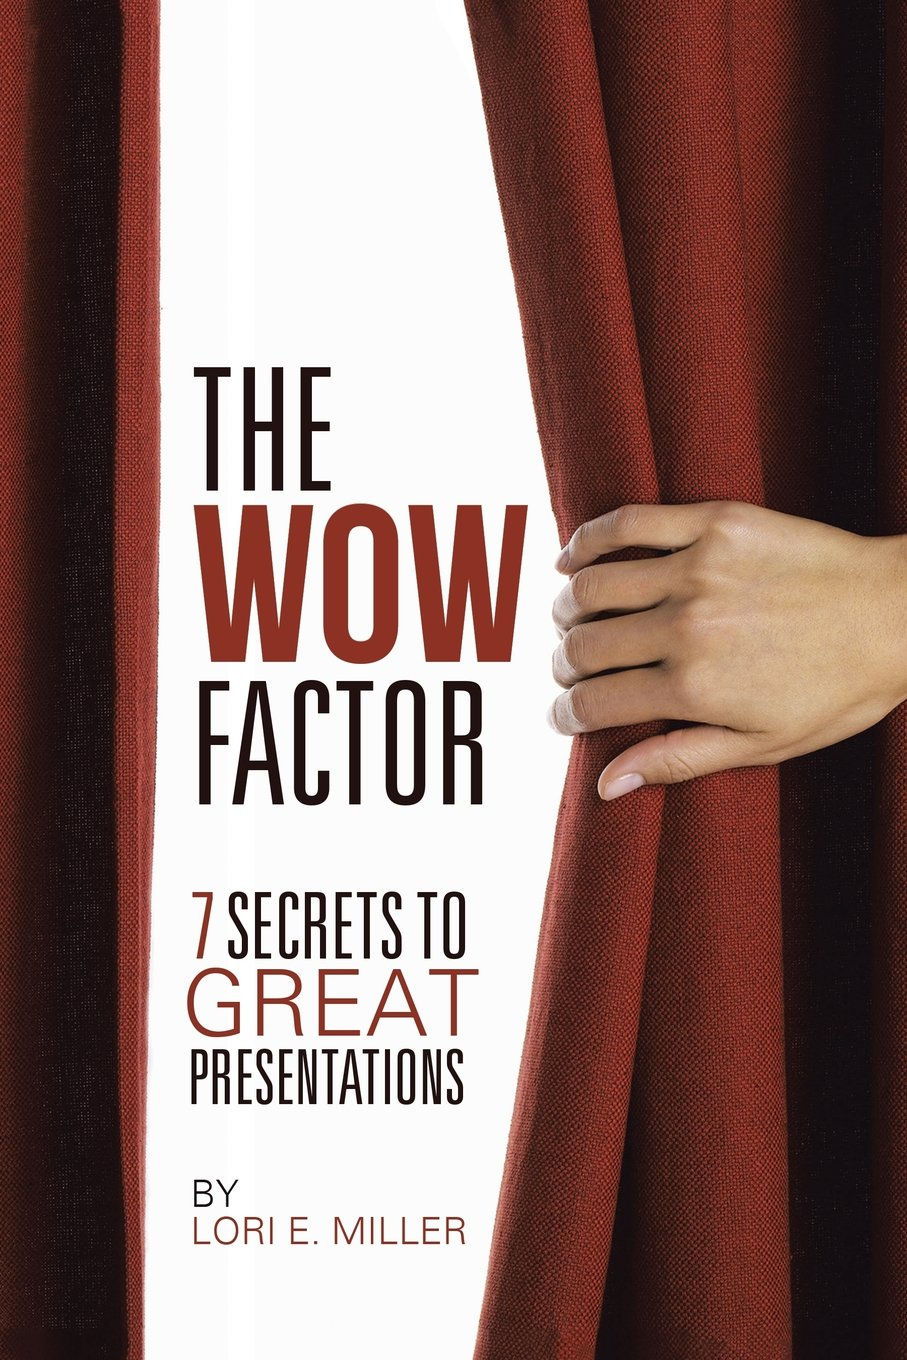 Download The Wow Factor - 7 Secrets to Great Presentations pdf